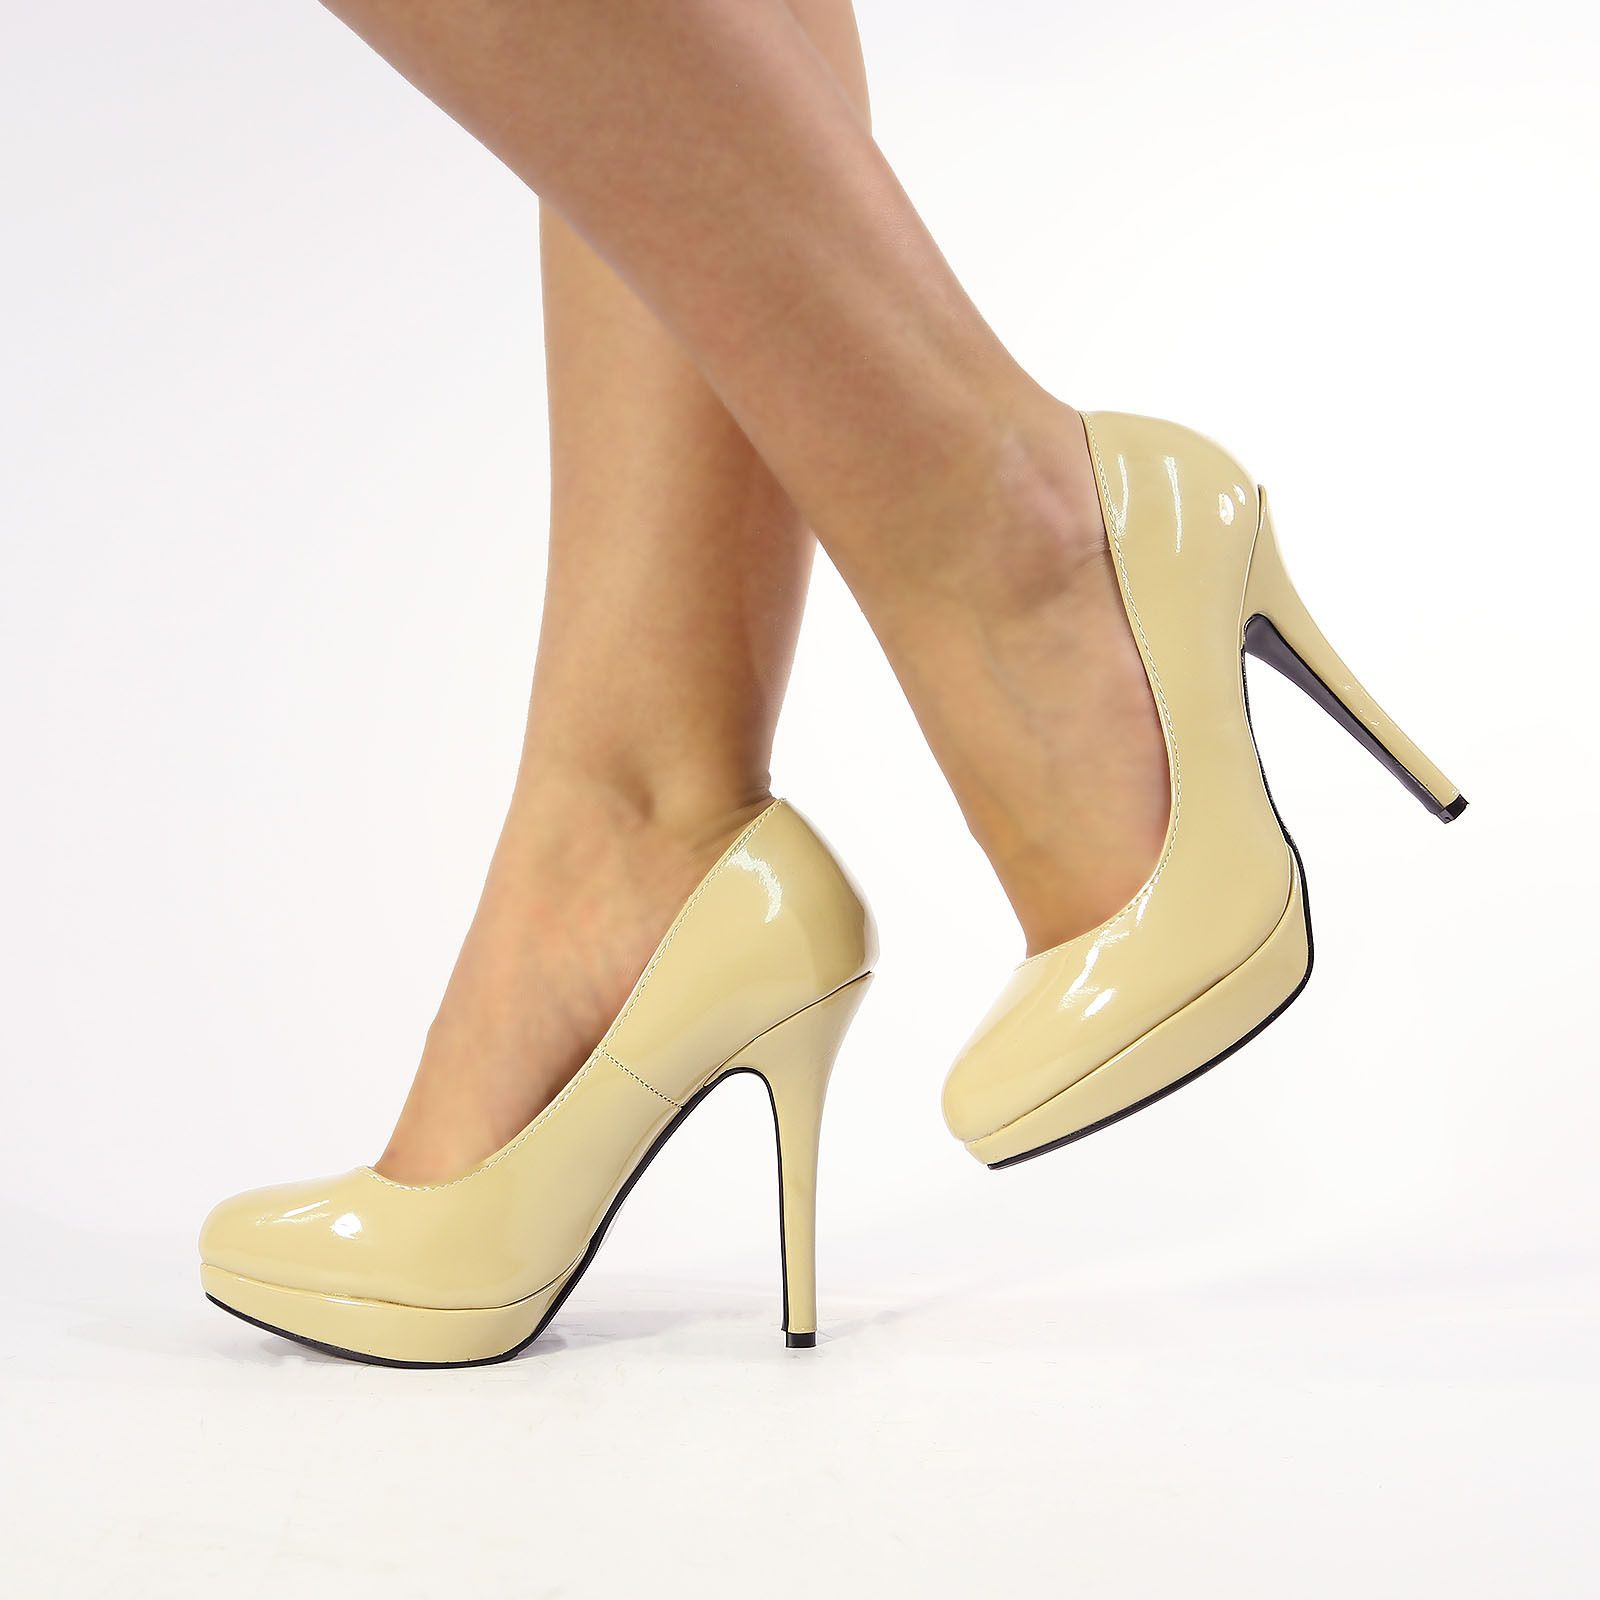 8b742538f013b Details about NEW WOMENS LADIES STILETTO HIGH HEEL COURT SHOES SIZE ...